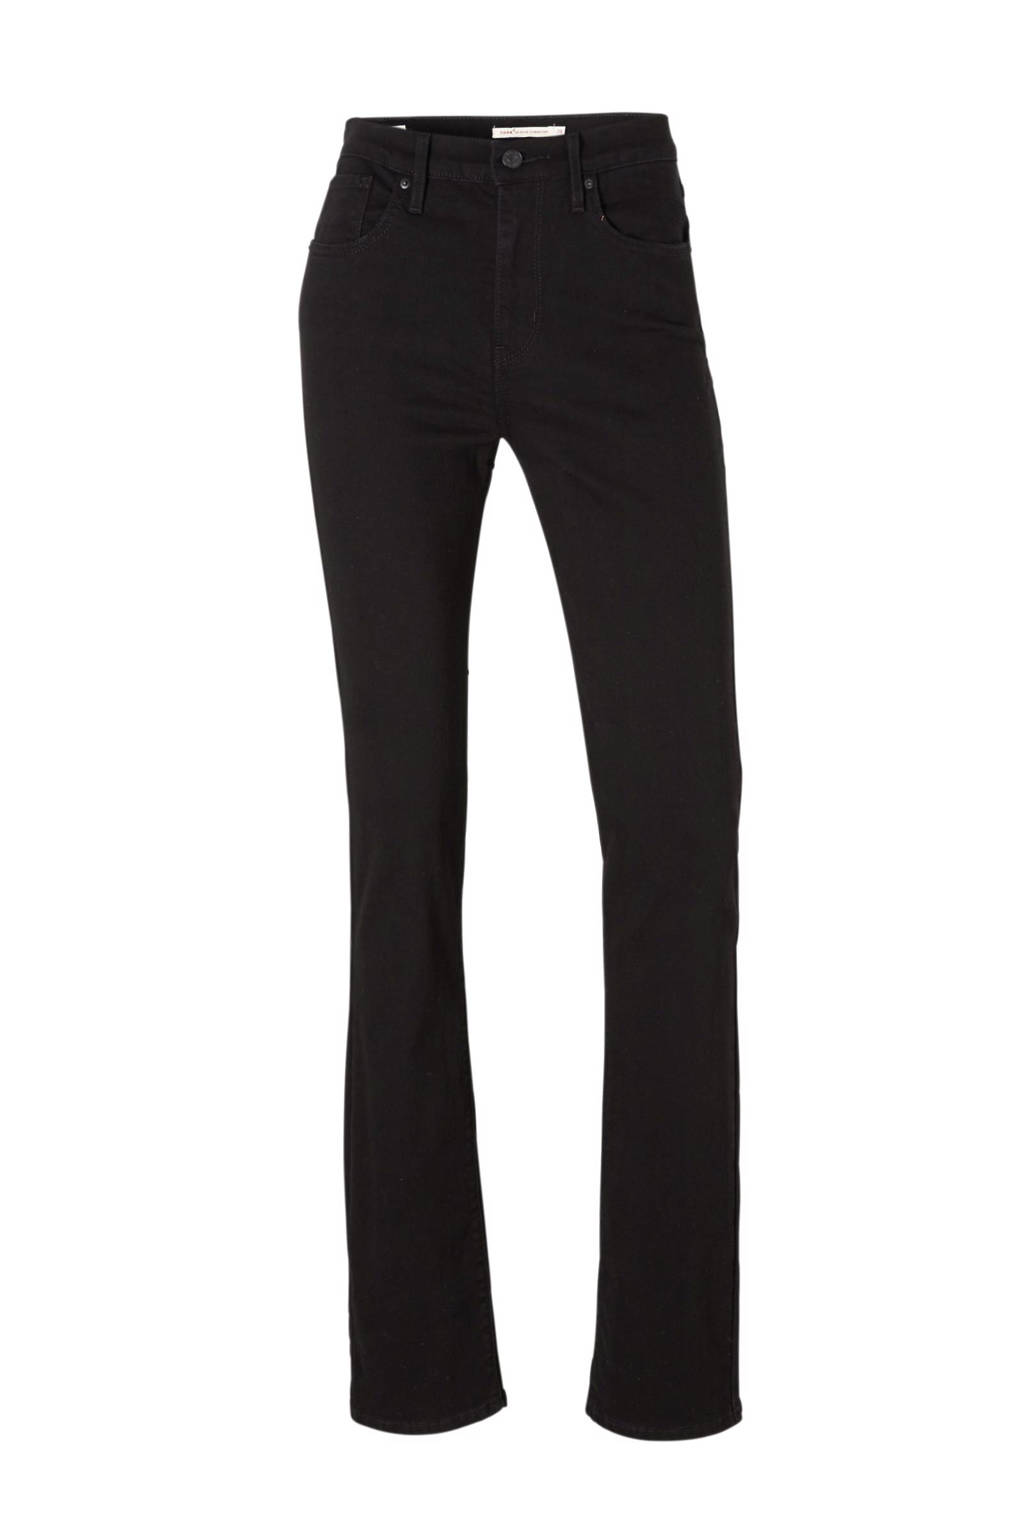 Levi's 724 high rise straight fit jeans, Black Sheep